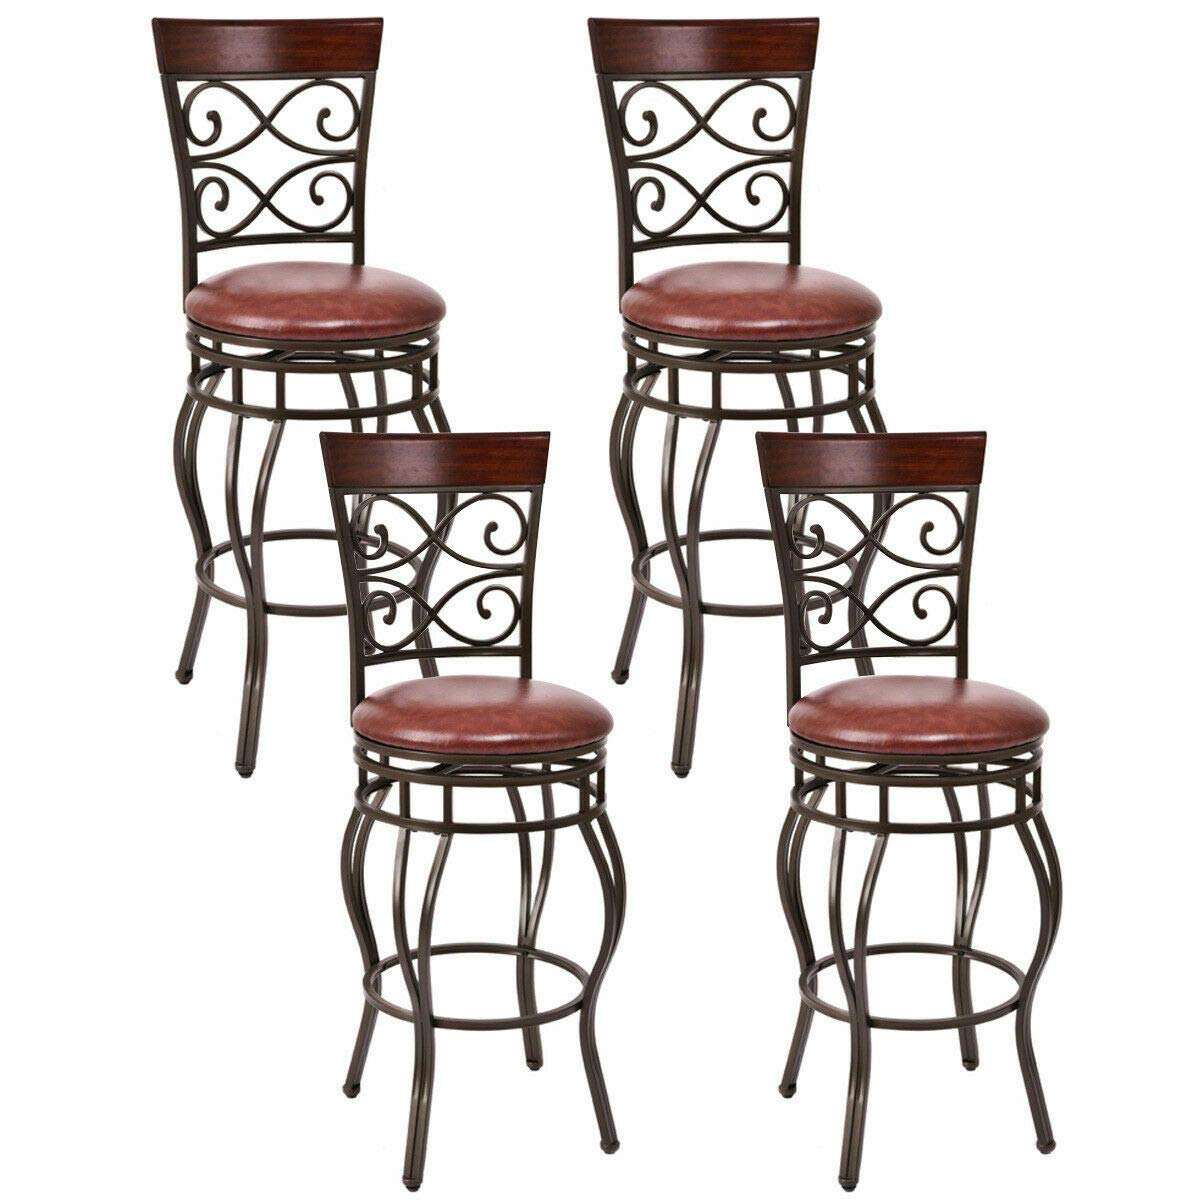 COSTWAY Bar Stools Set of 4, 360 Degree Swivel, 30'' Seat Height Bar stools, with Leather Padded Seat Bistro Dining Kitchen Pub Metal Vintage Chairs (Set of 4) by COSTWAY